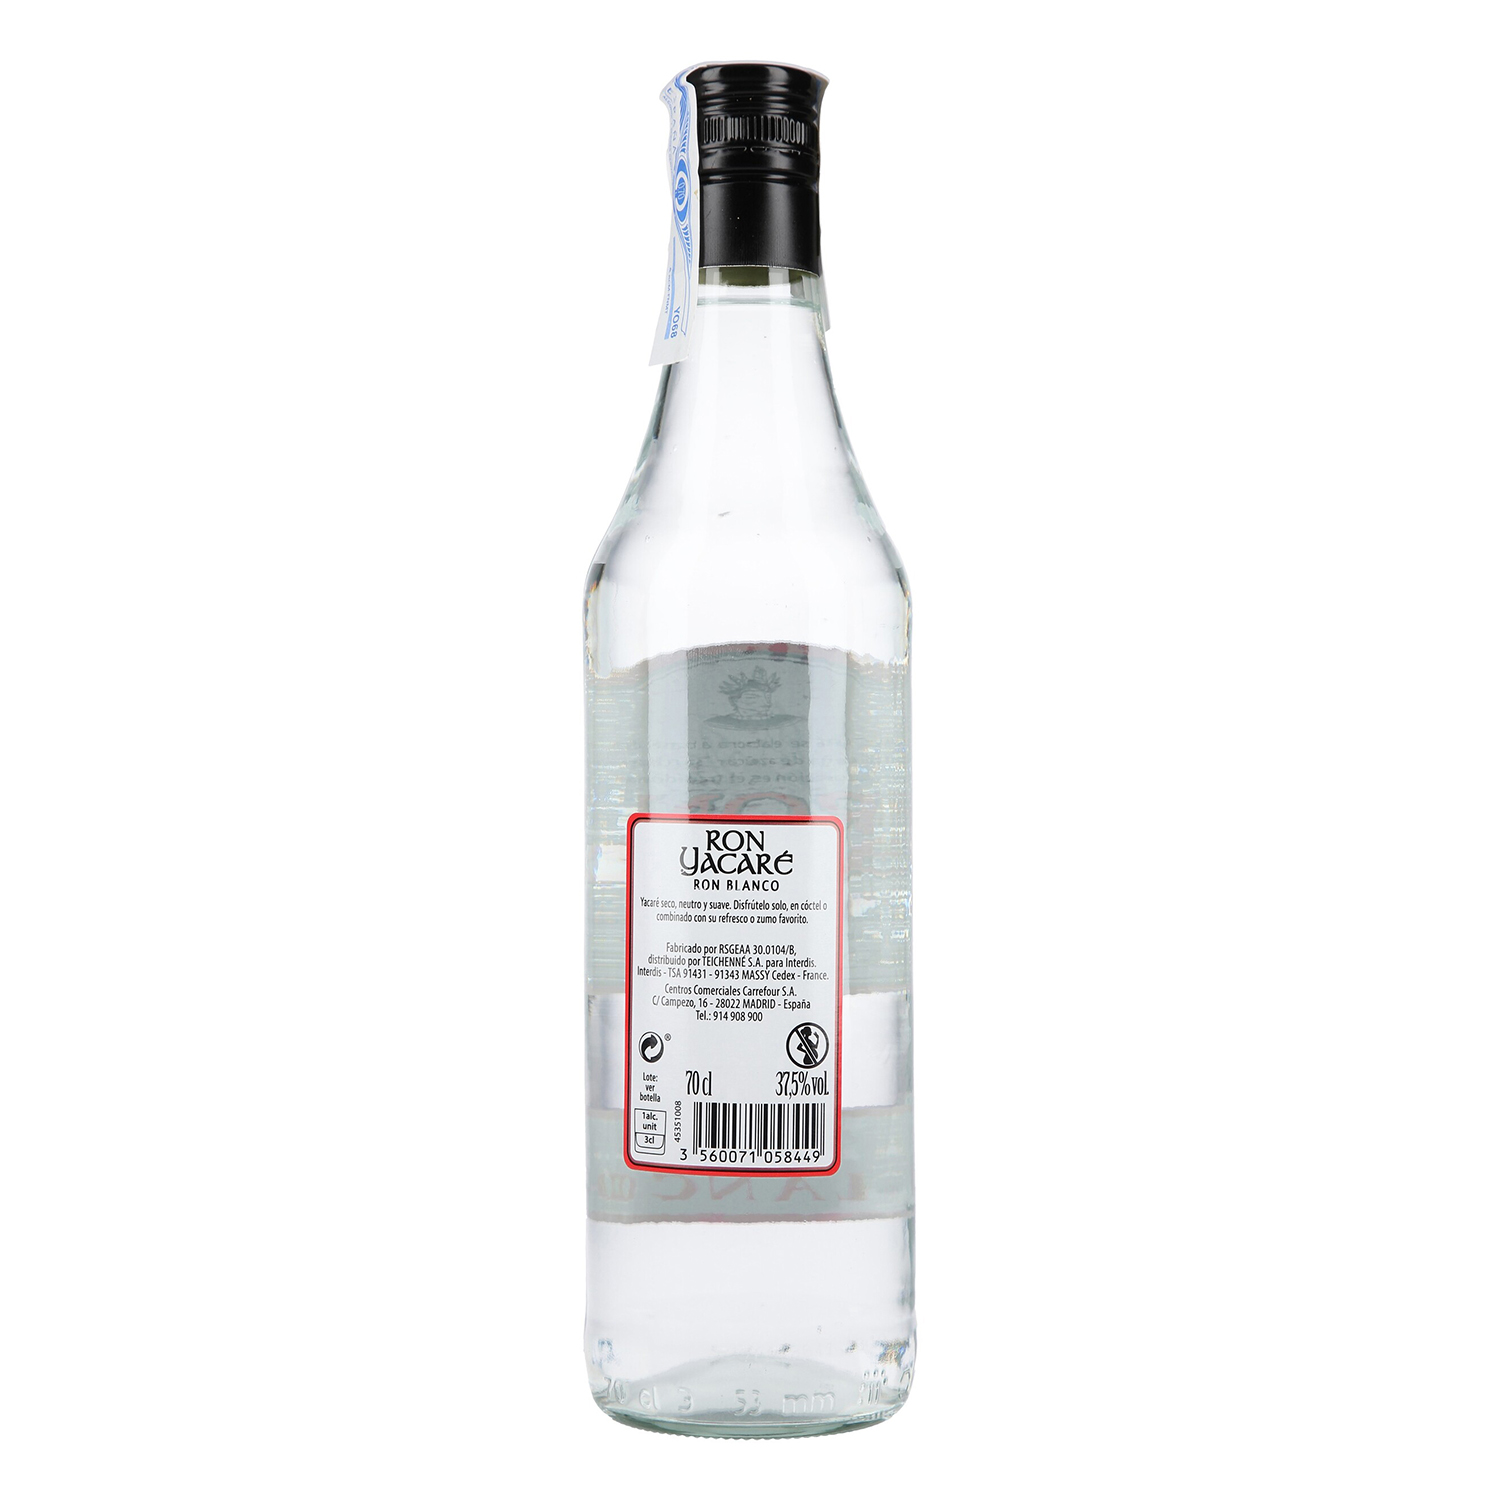 Ron Yacaré carta blanca 70 cl. -